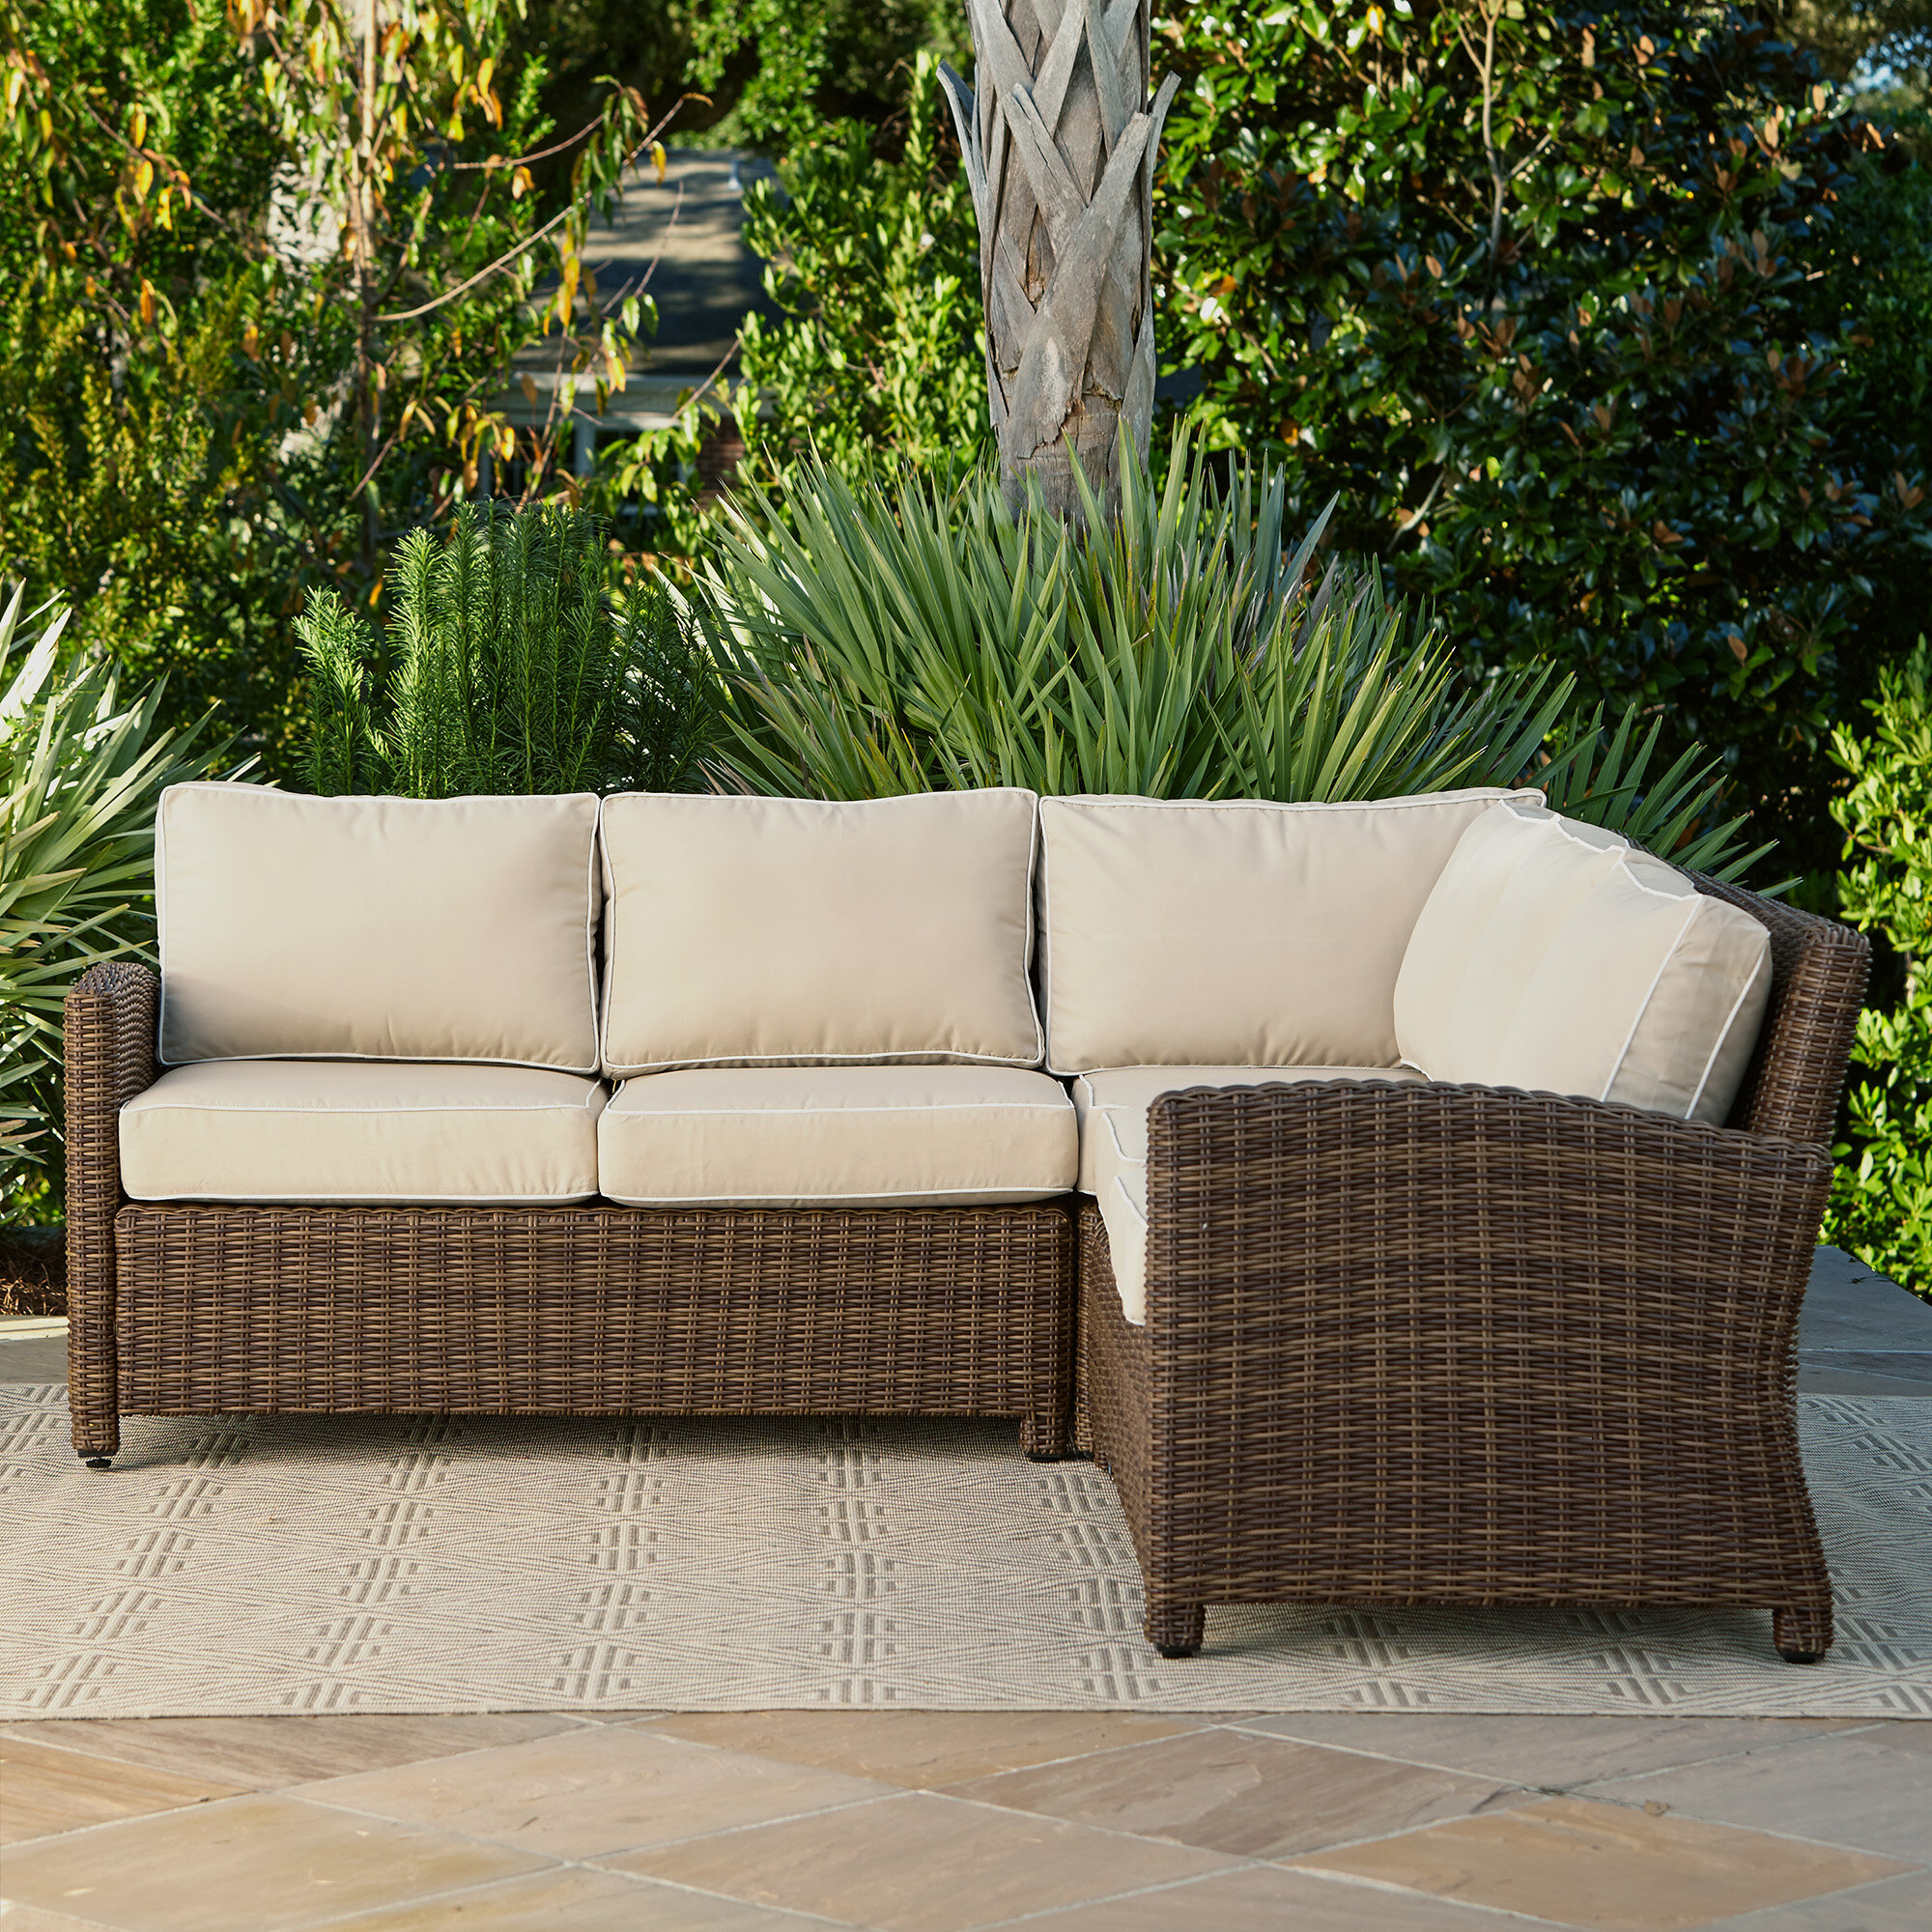 woven lovely sofa wicker rattan resin outdoor of chairs best patio furniture sectional unique cool cushions